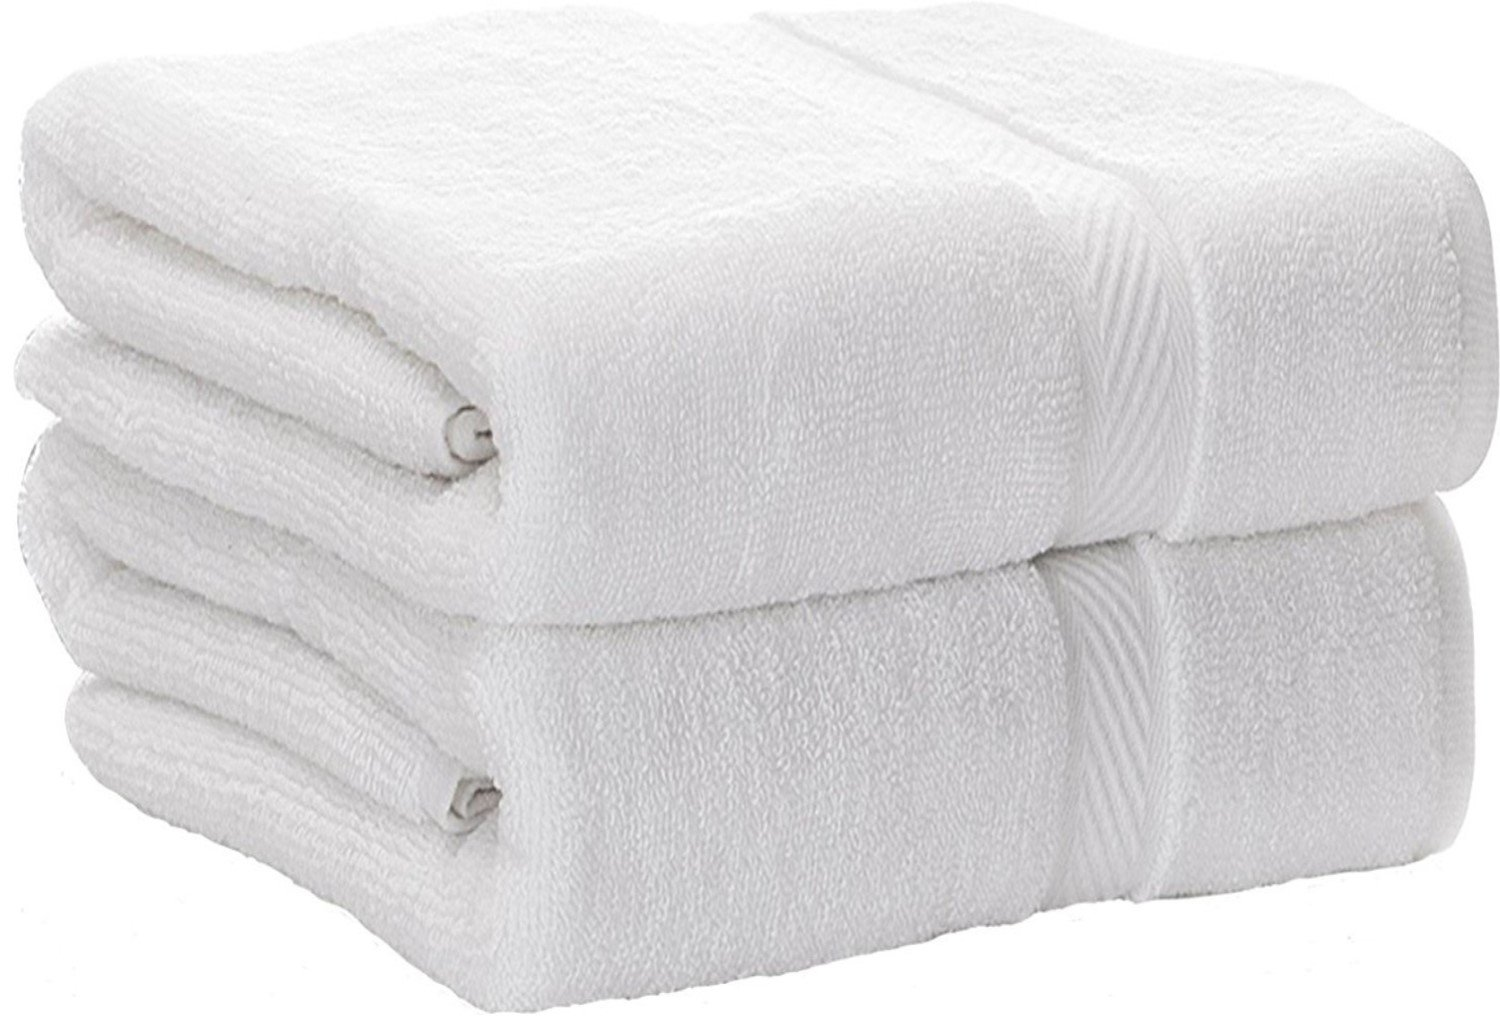 Luxury Hotel & Spa Bath Towels, 100% Cotton, Extra Large, 30x56 Inches, Set of 2, White,